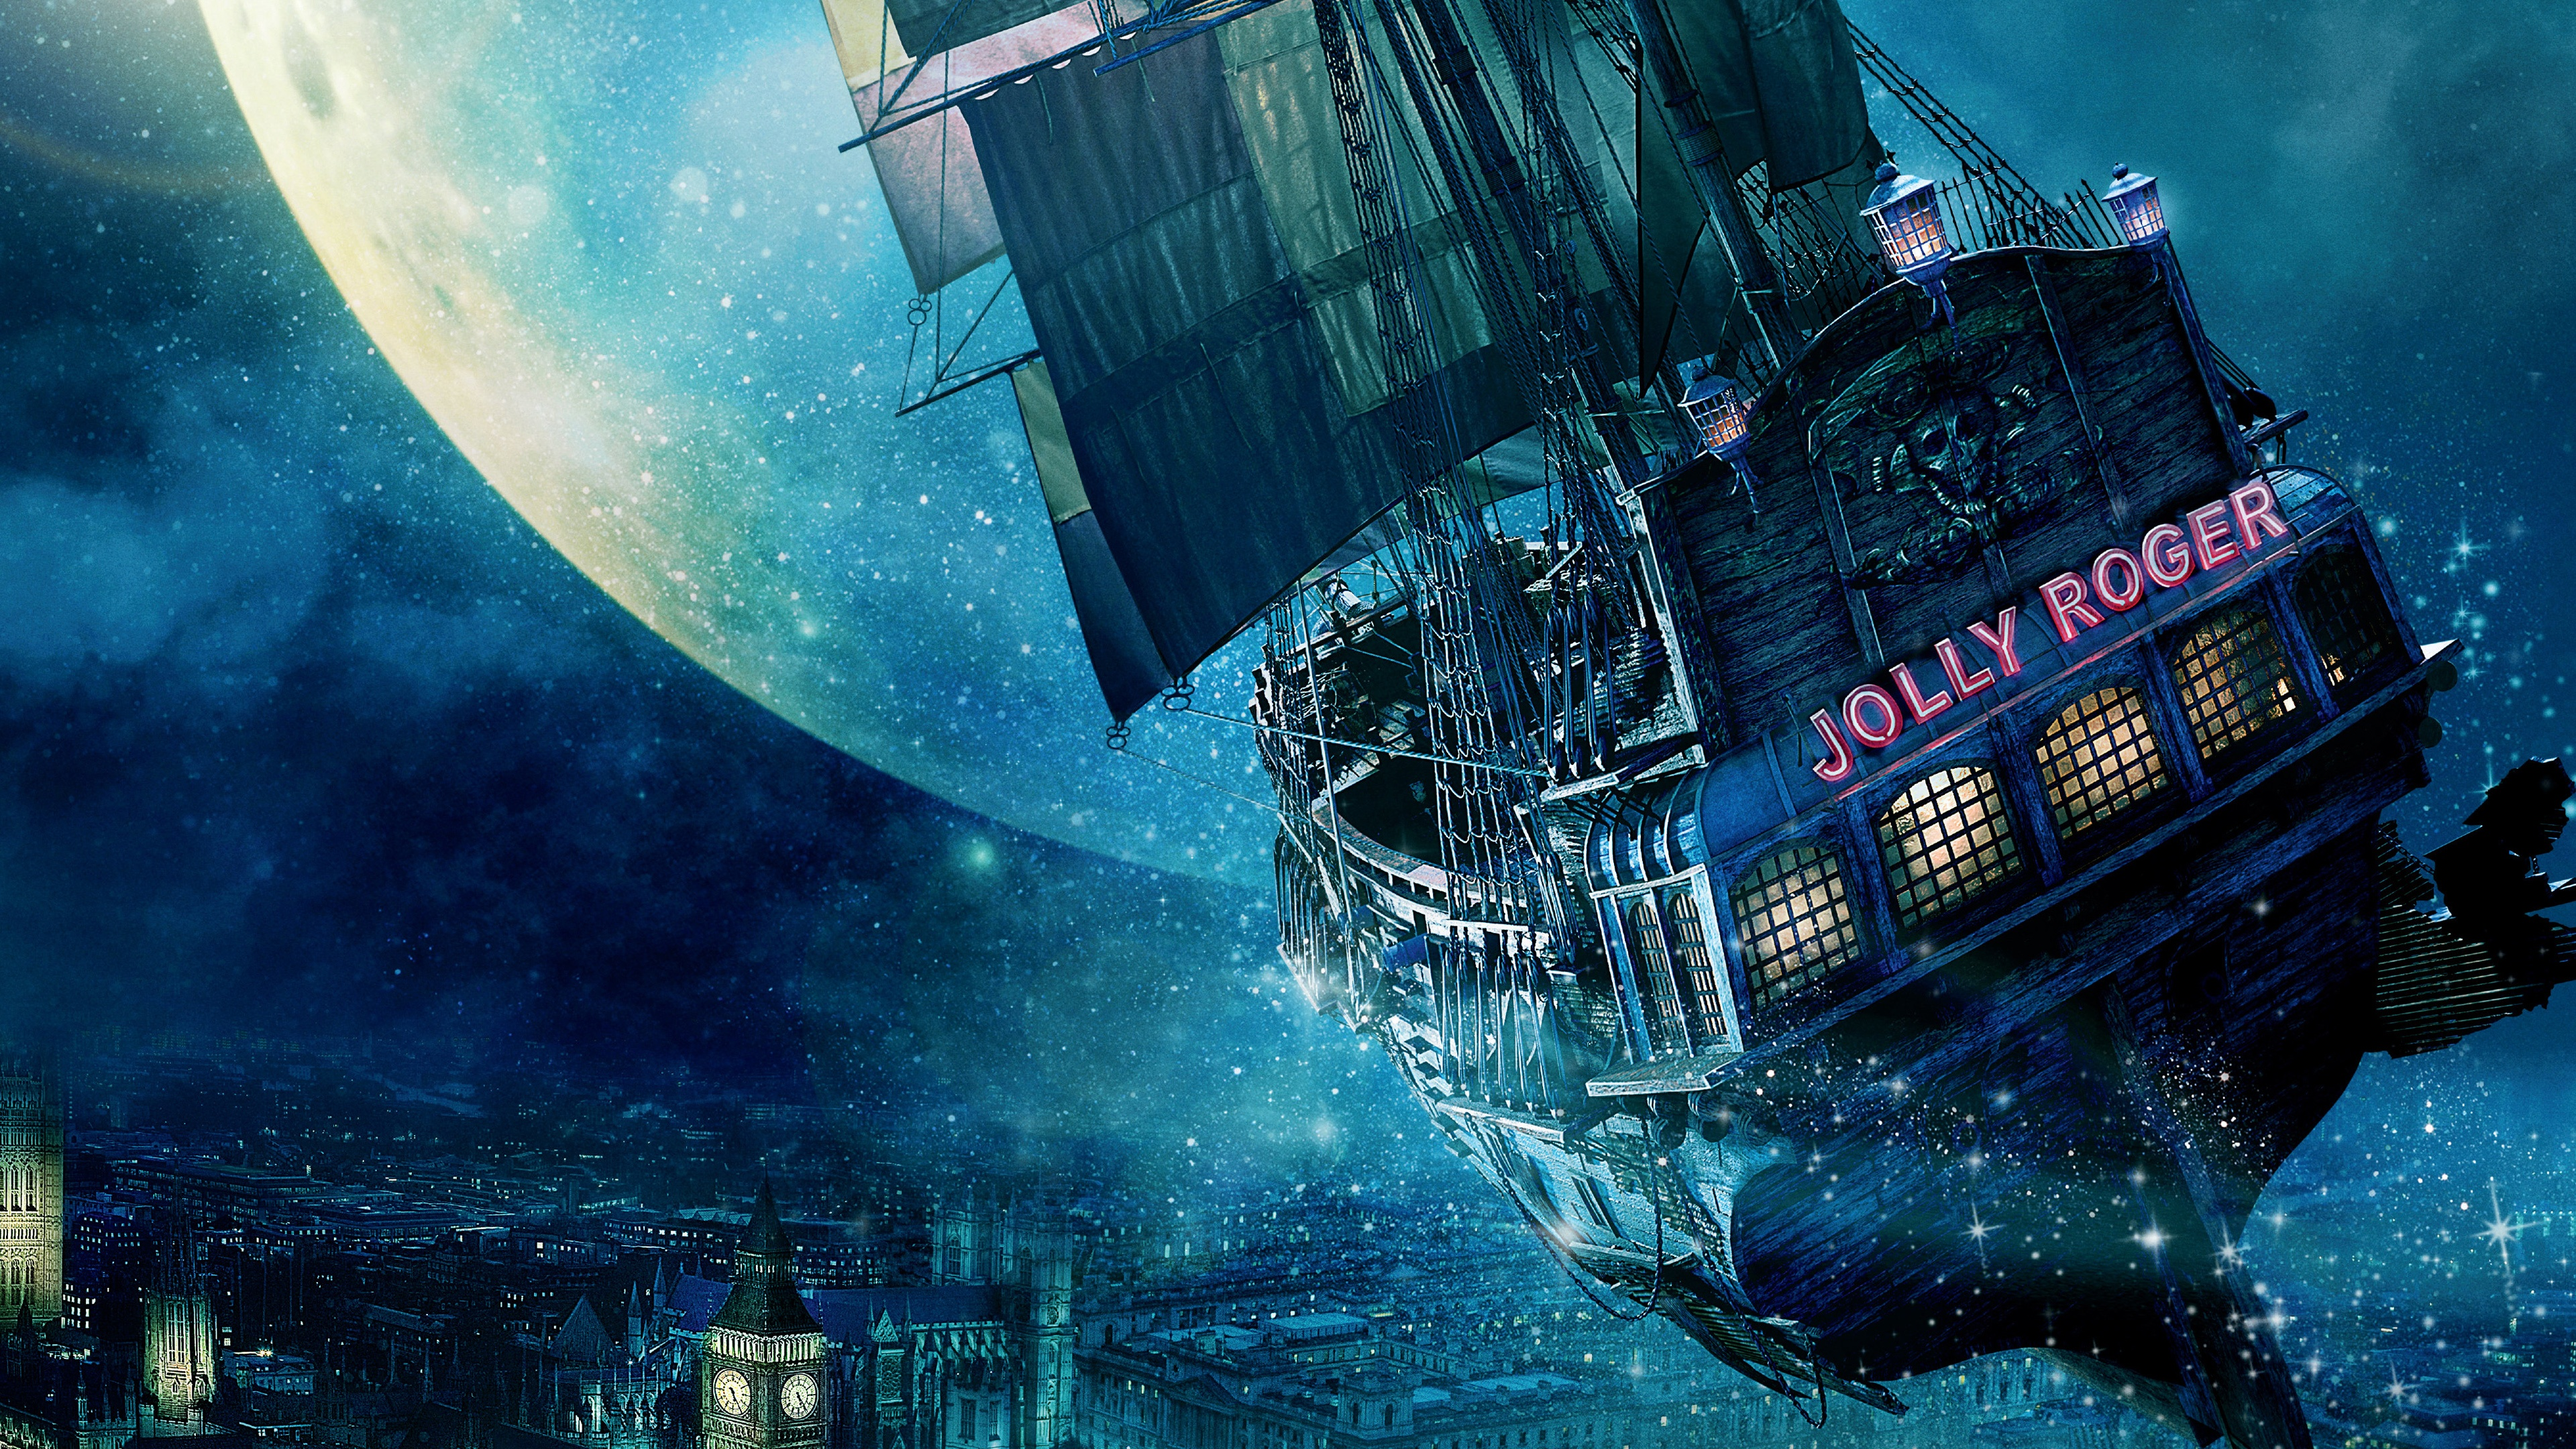 Titanic Ship 3d Wallpaper Free Download Jolly Roger Ship Peter Pan Wallpapers In Jpg Format For